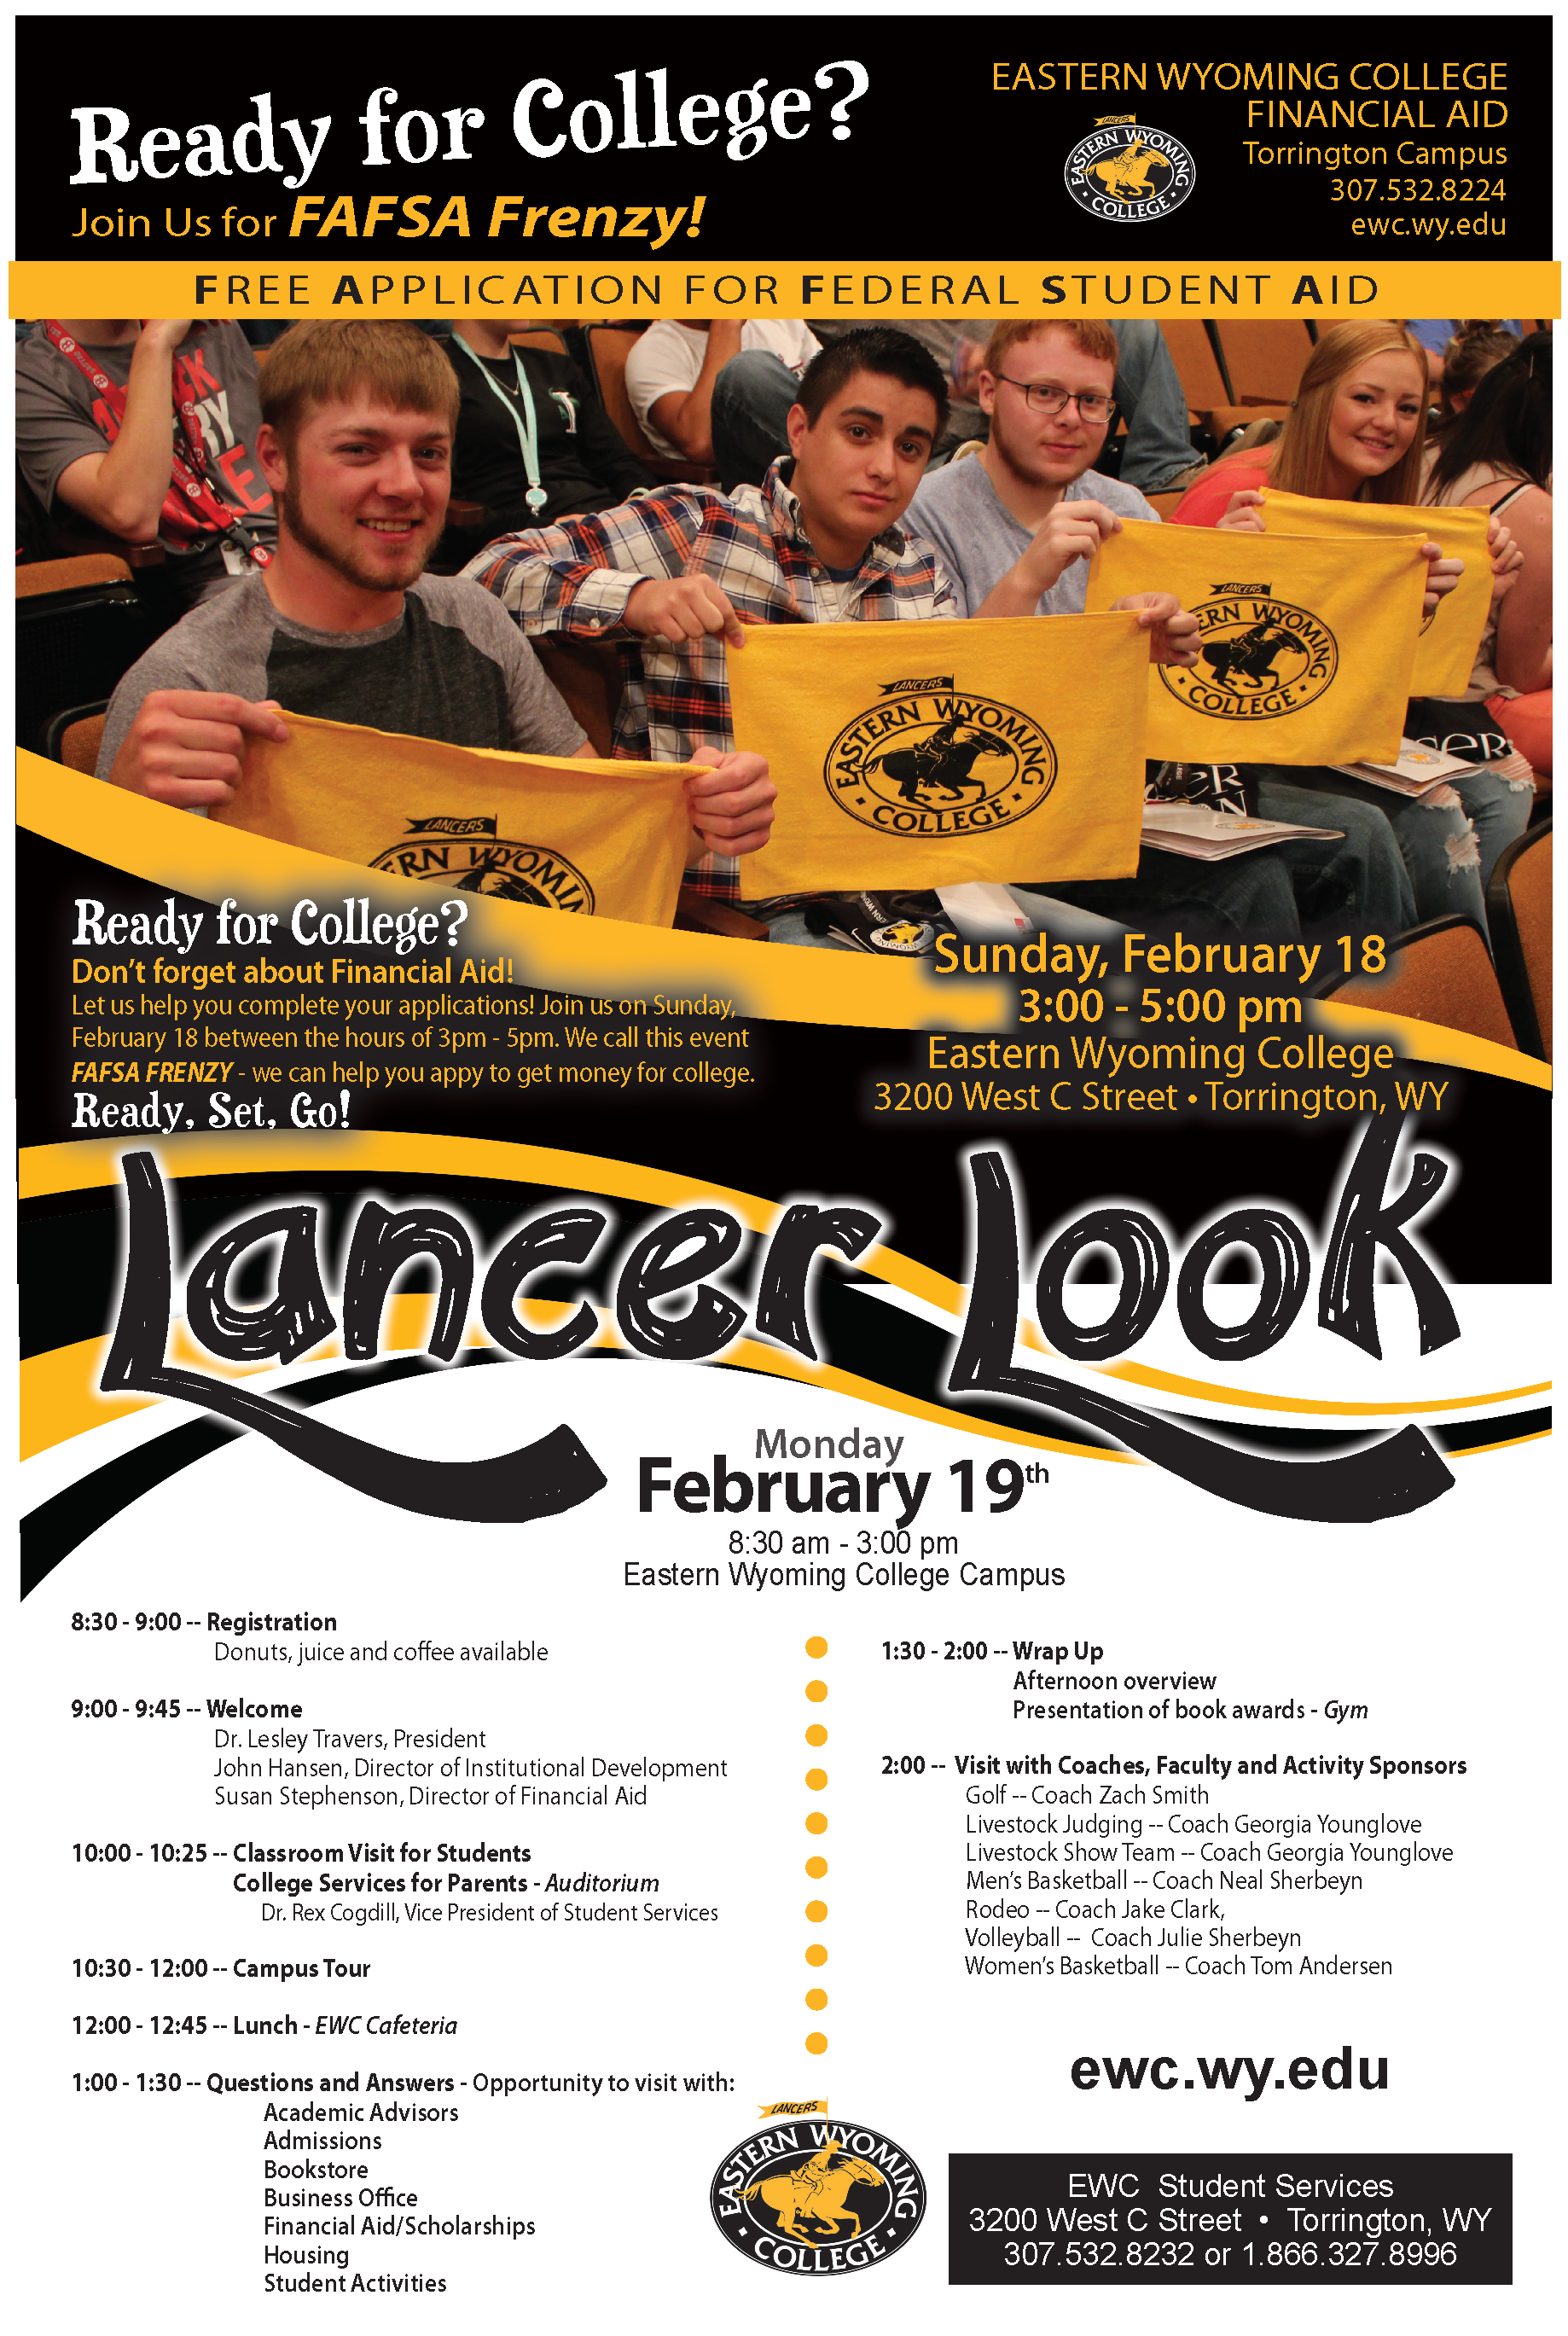 Eastern Wyoming College - Lancer Look 2018